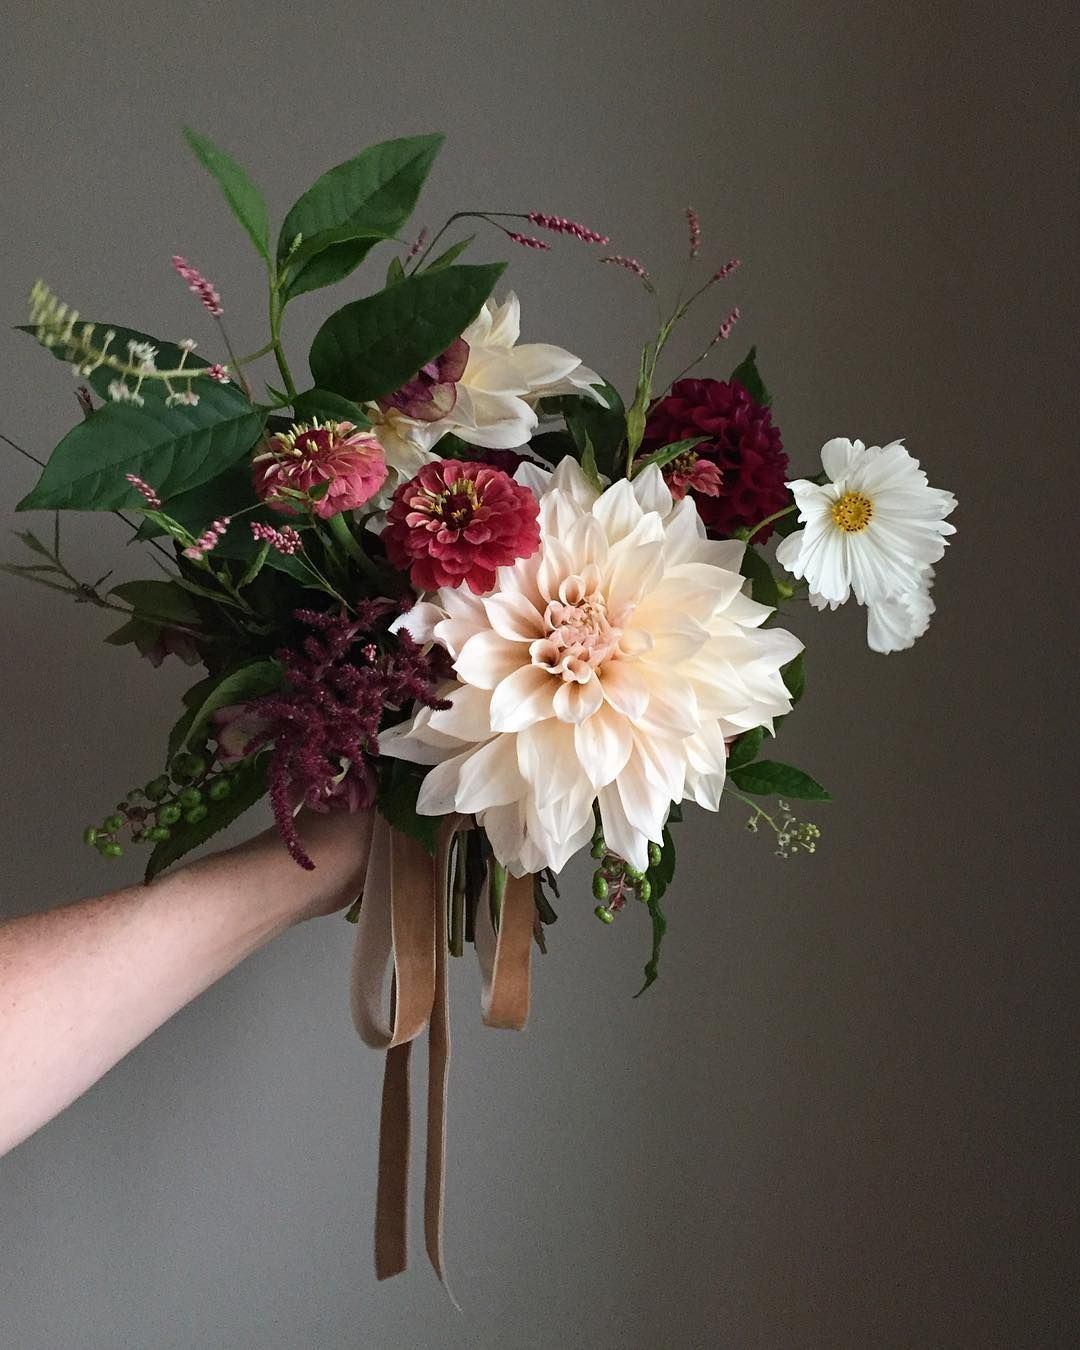 Late summer take on blush and burgundy flowers - natural bridal bouquet of cafe au lait dahlias, zinnias, amaranthus, pokeweed, burgundy pom dahlias, hellebore, and white cosmos | by Wild Green Yonder #whitebridalbouquets